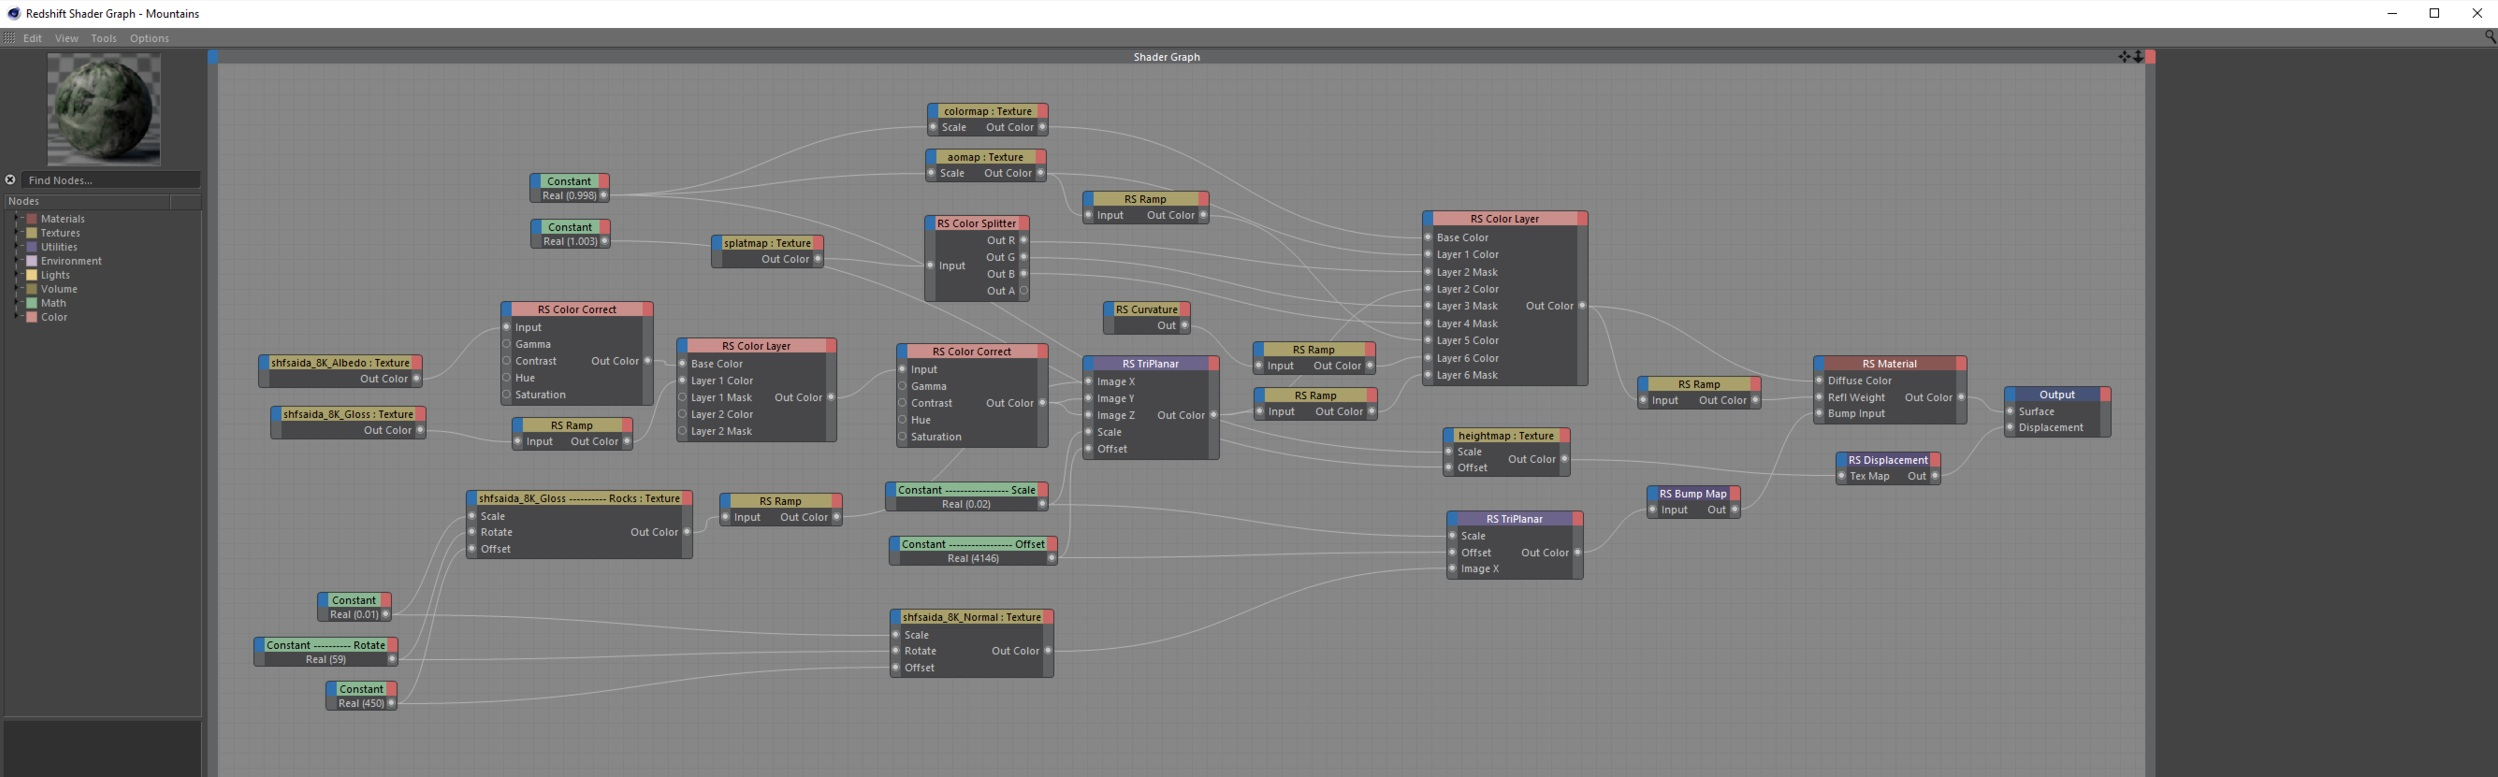 Shader Graph view of the mountain material node network.